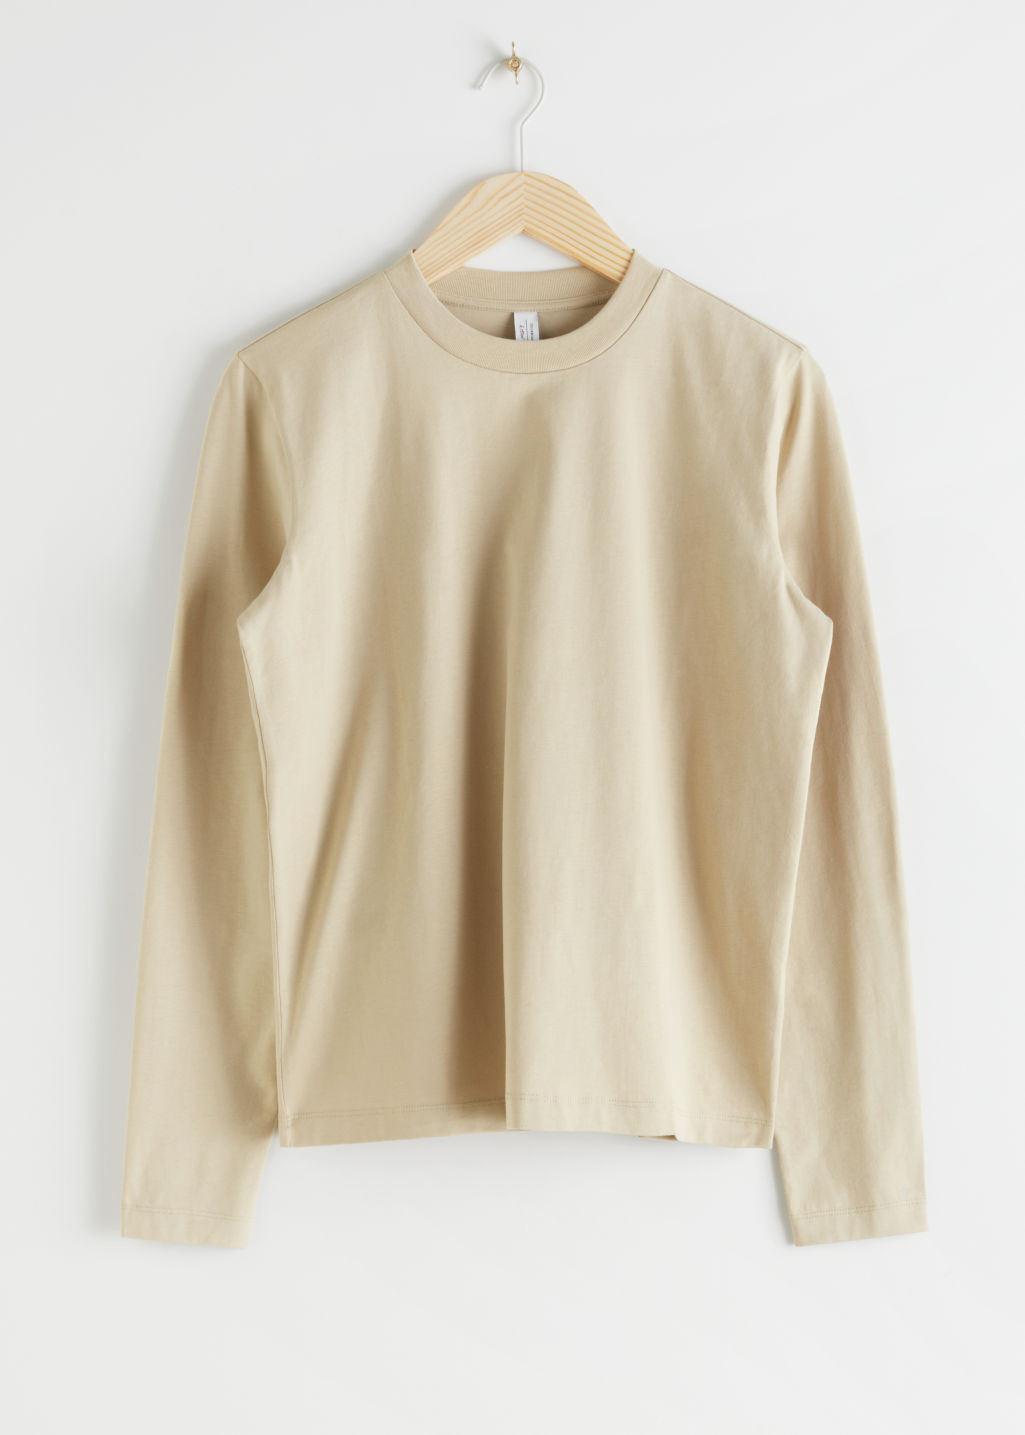 StillLife Front Image of Stories Organic Cotton Long Sleeve T-Shirt in Beige